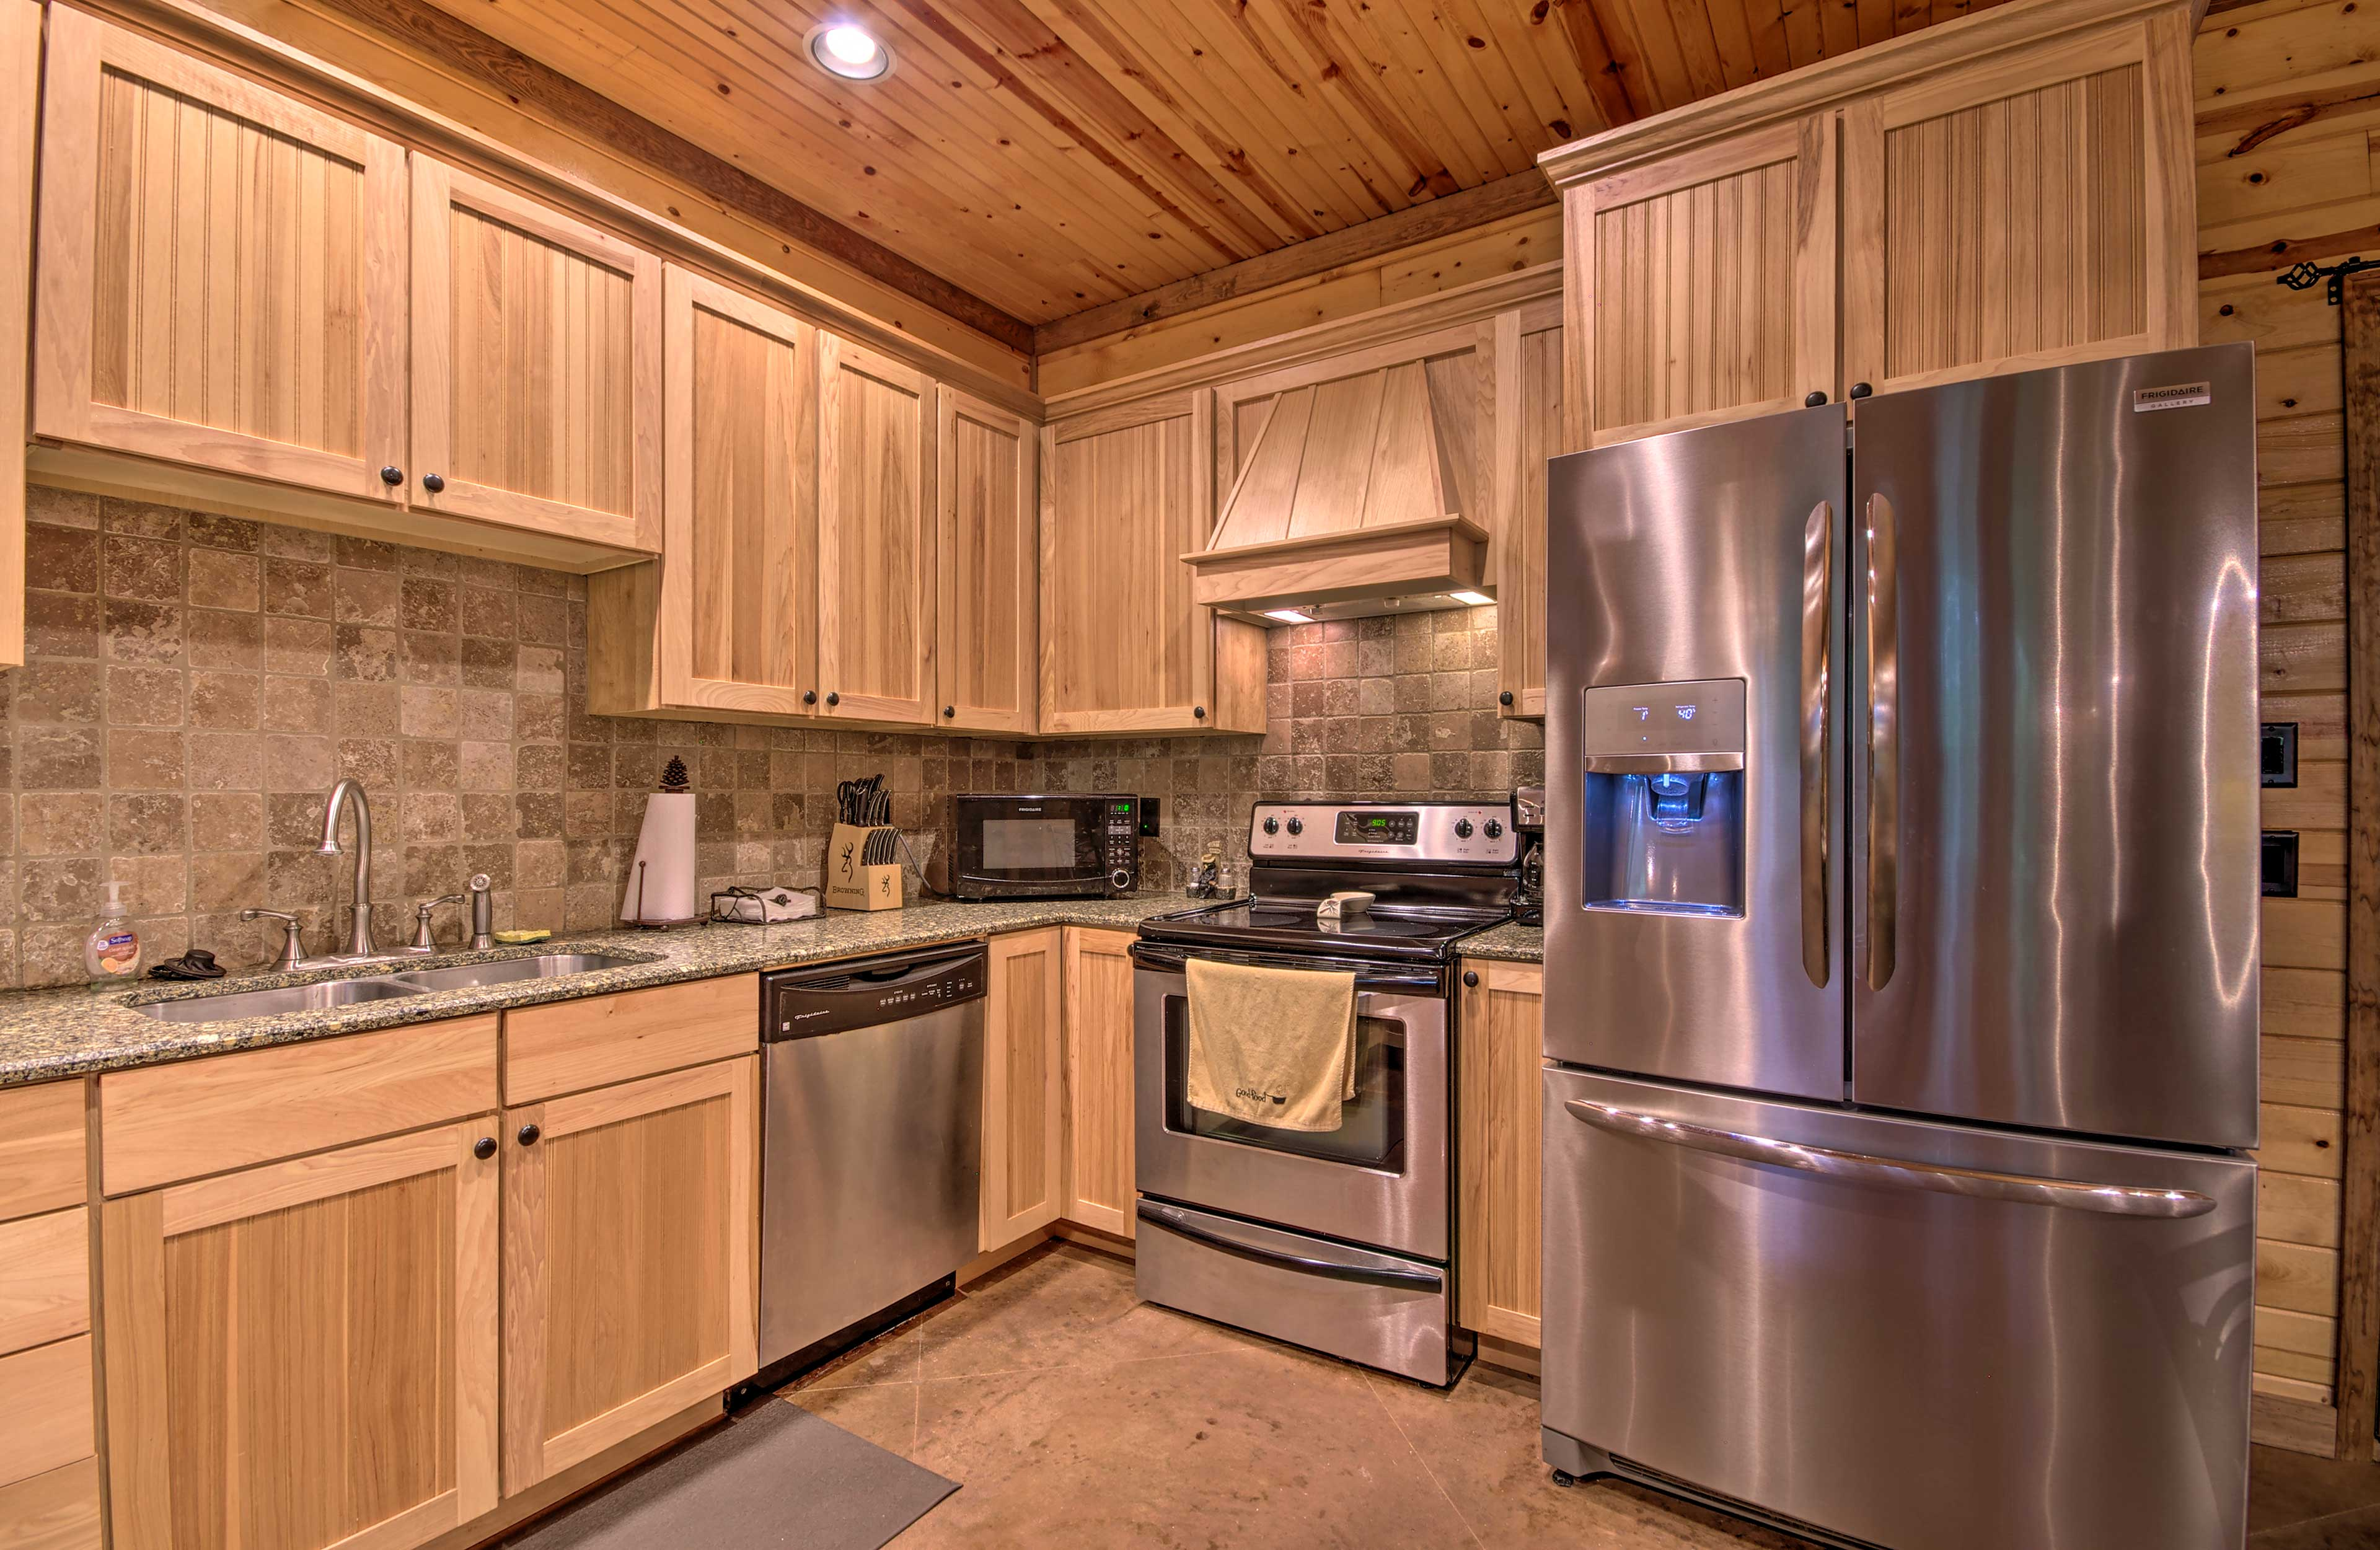 The stainless steel appliances and sleek cabinetry give a tasteful feel.